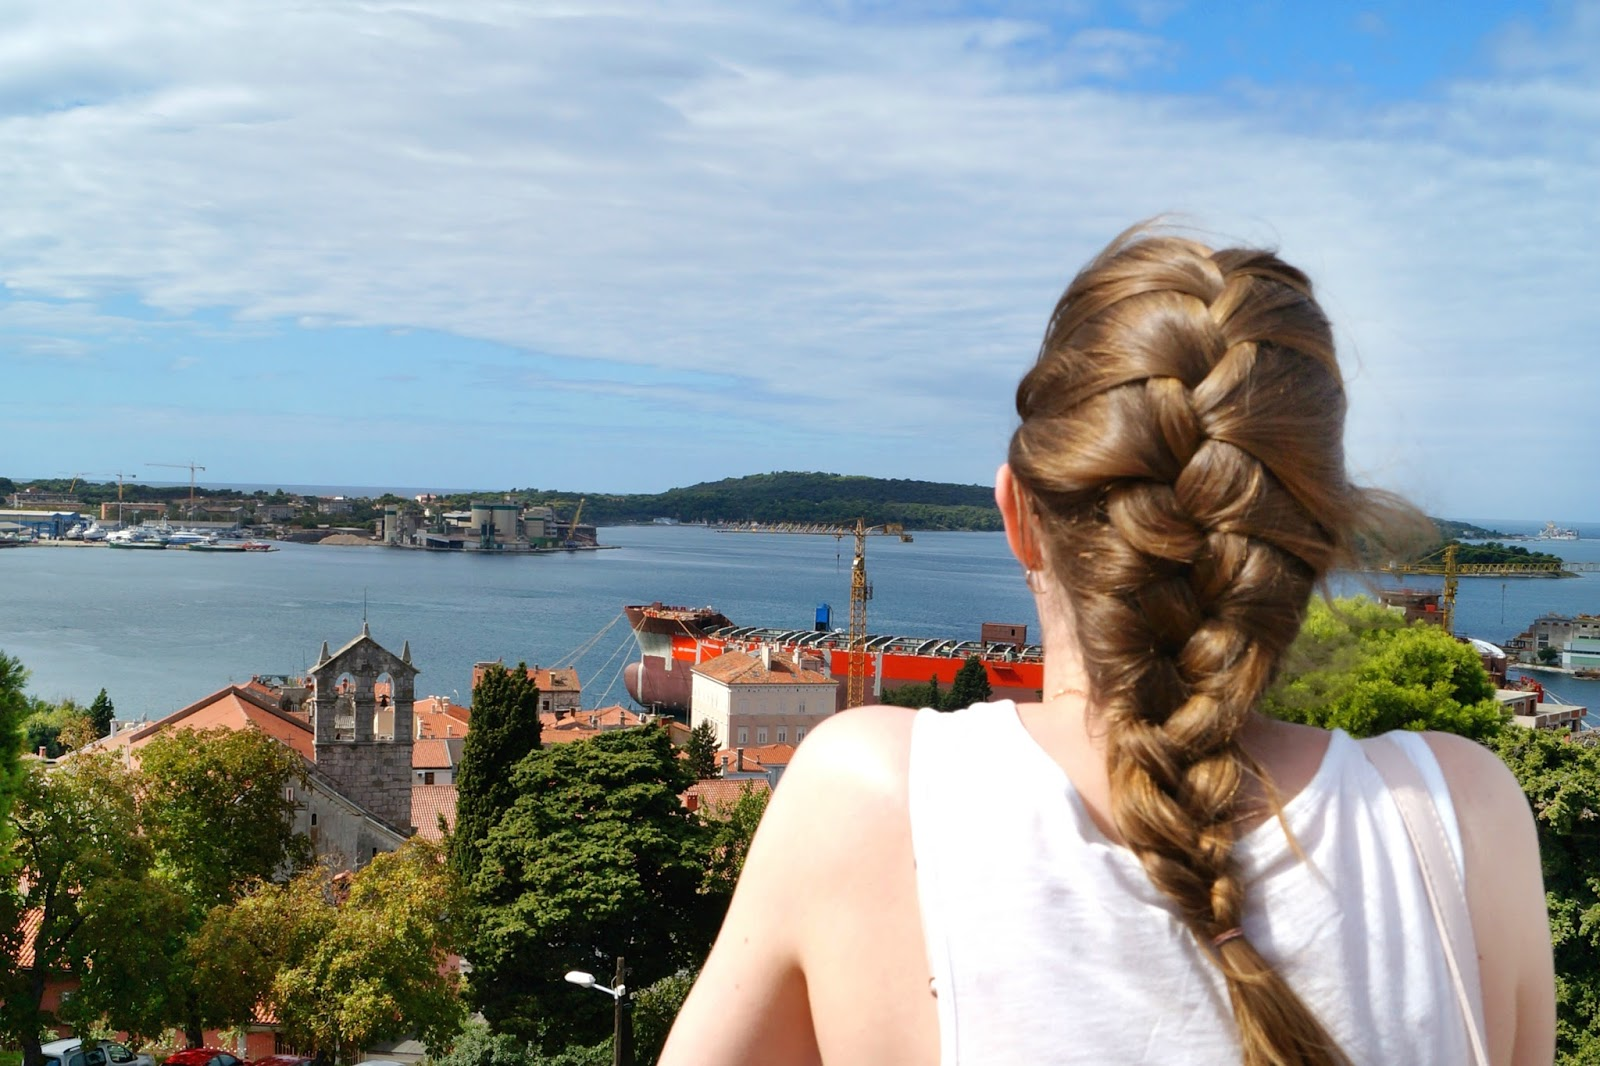 Girl Overlooking Sea And City of Pula